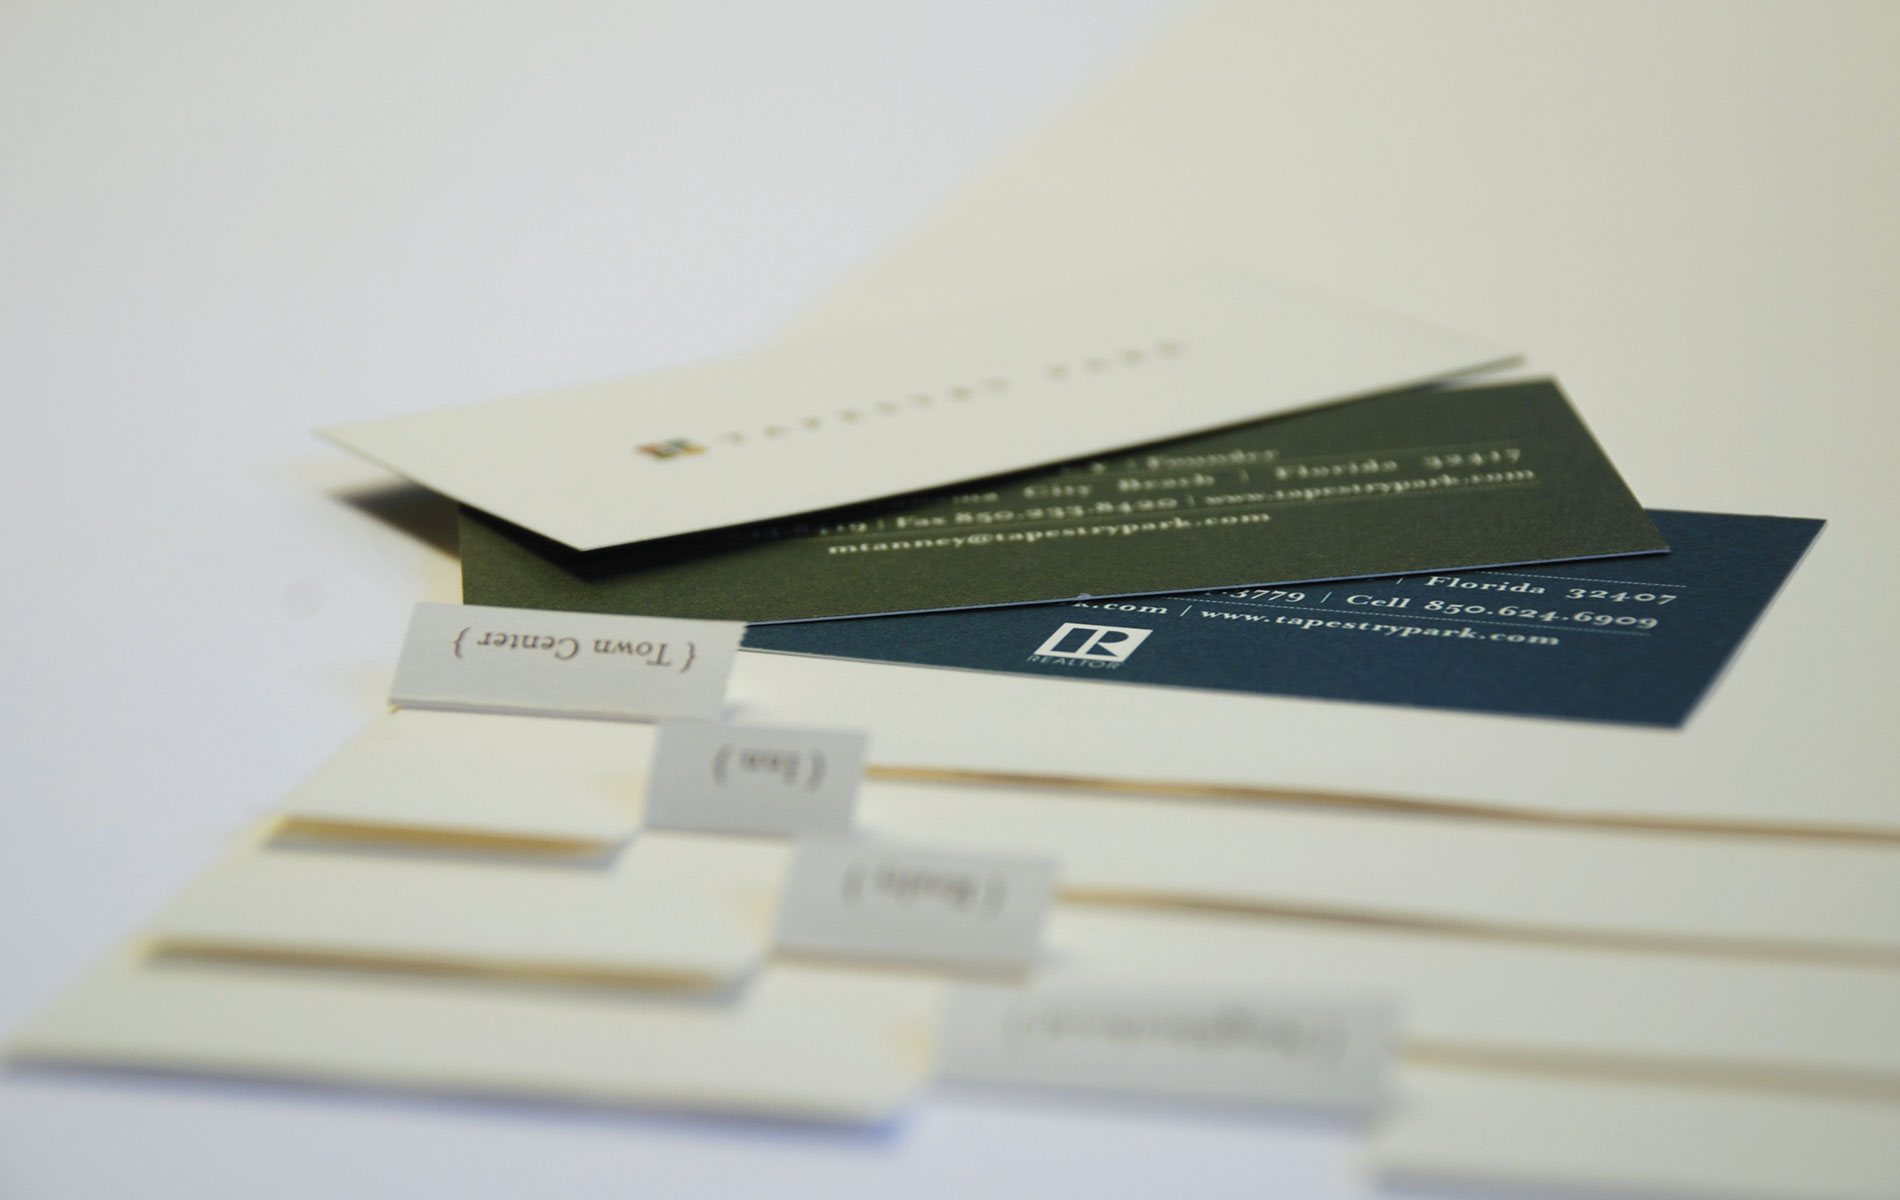 Tapestry Park business cards, branding